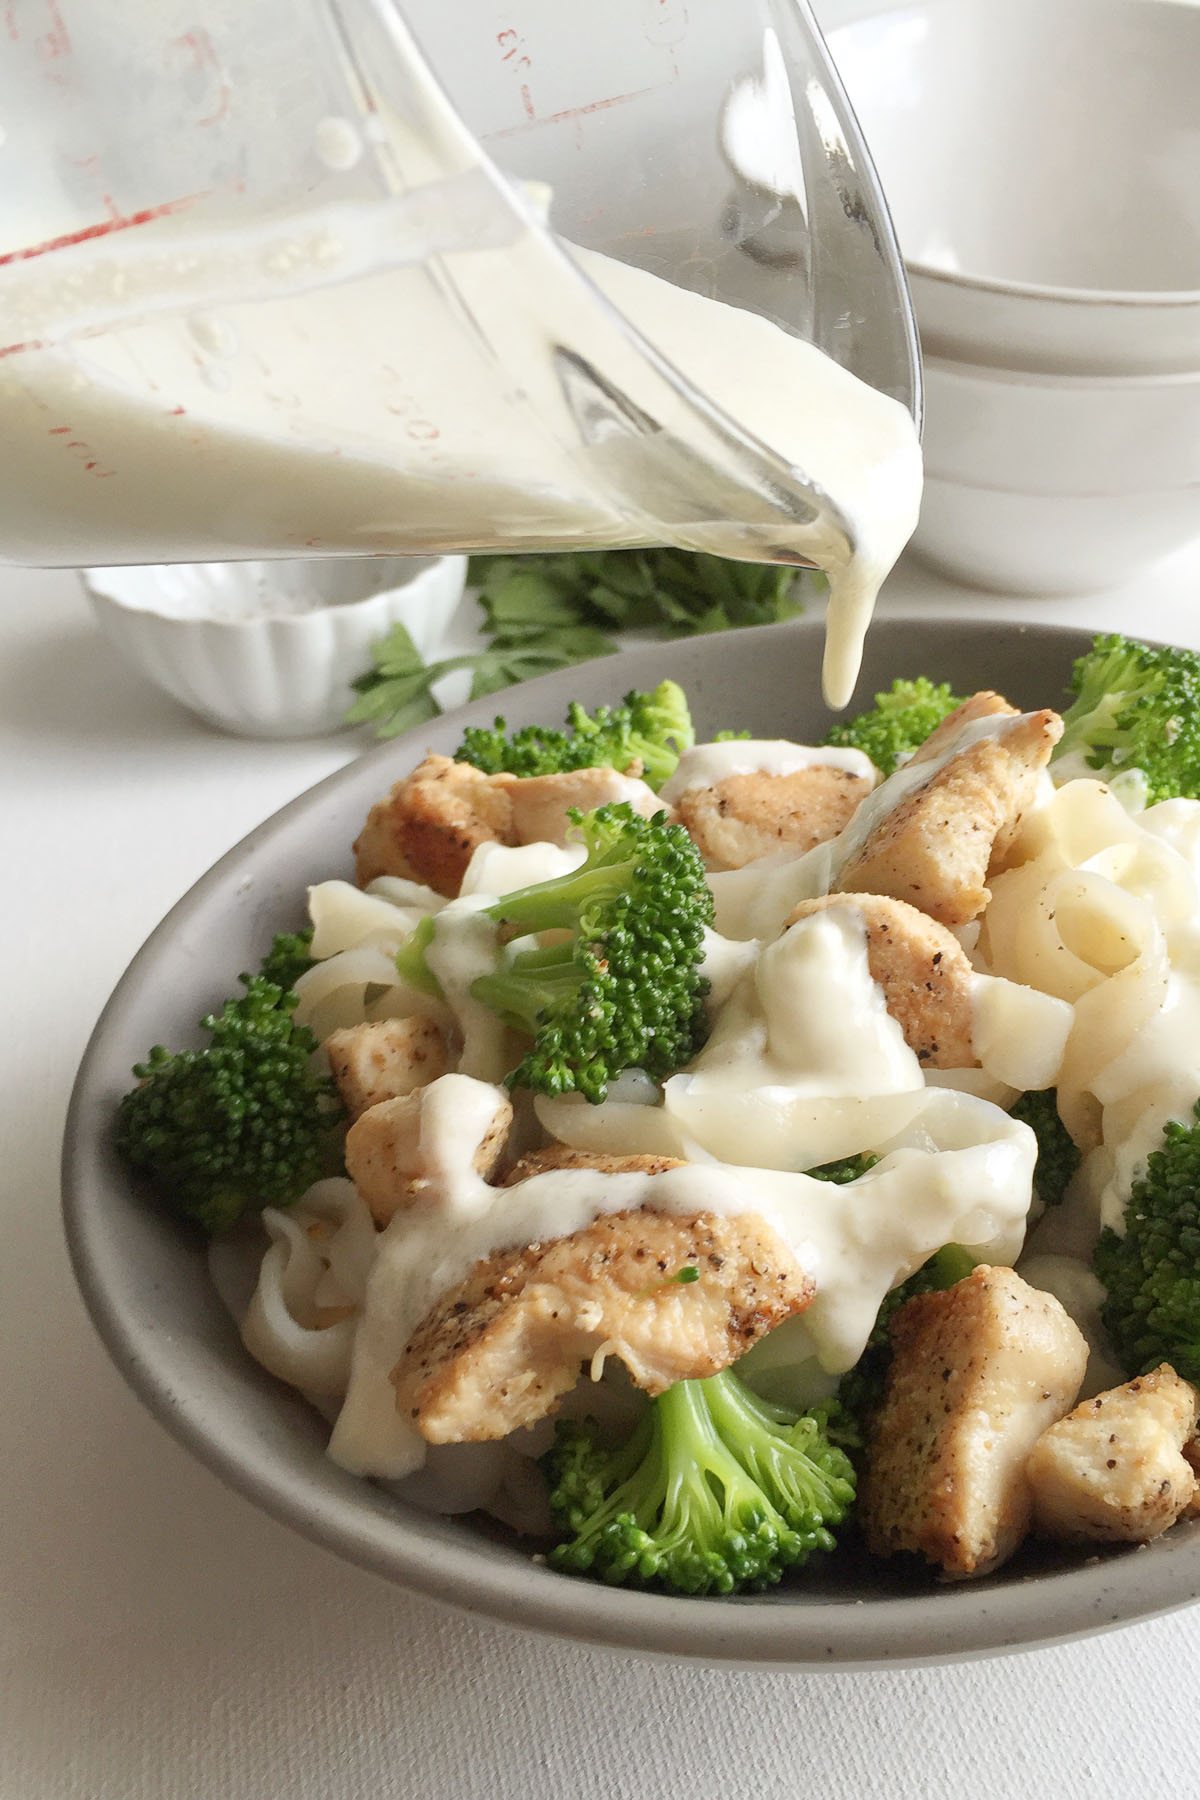 Healthy Chicken Broccoli Fettuccine Alfredo